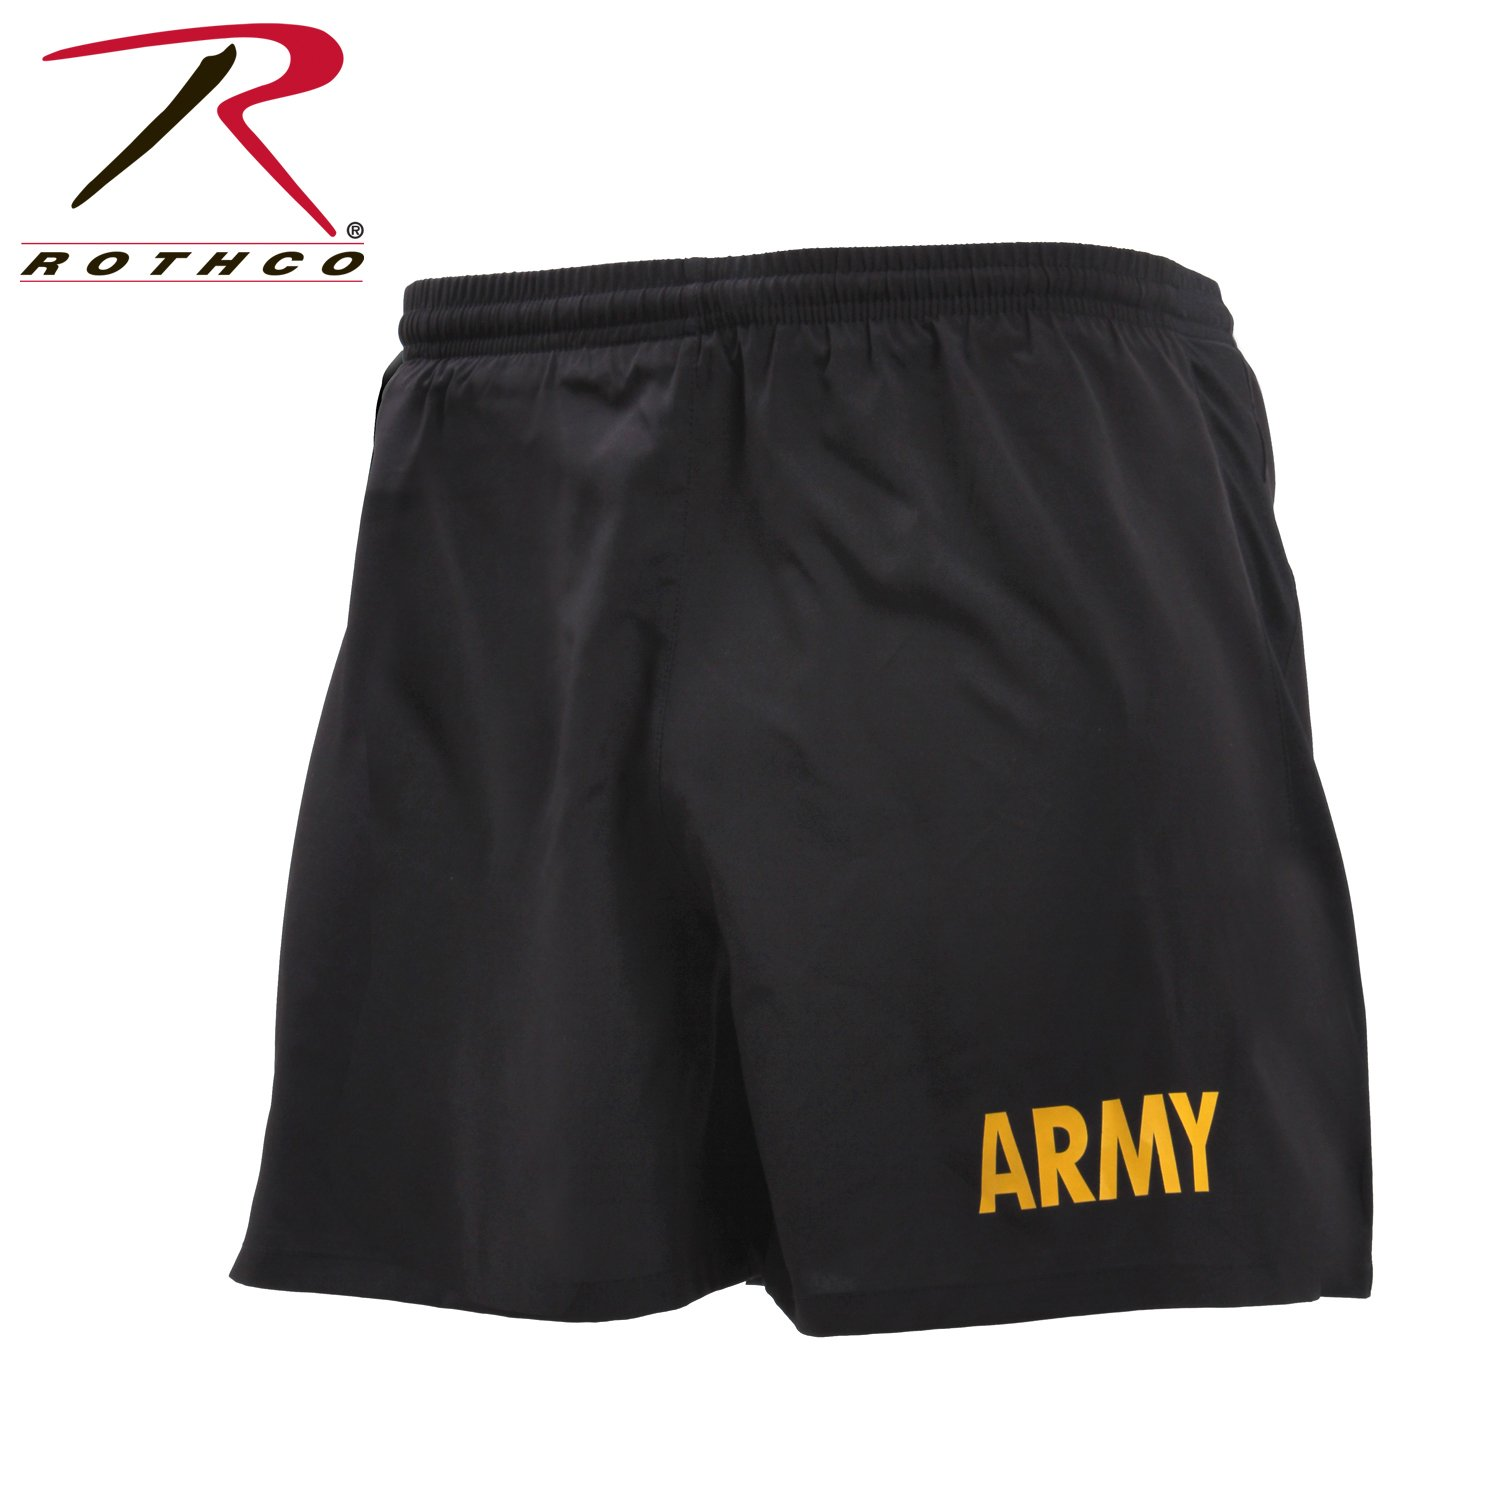 Rothco Army Physical Training Shorts, 2XL Black/Gold by Rothco